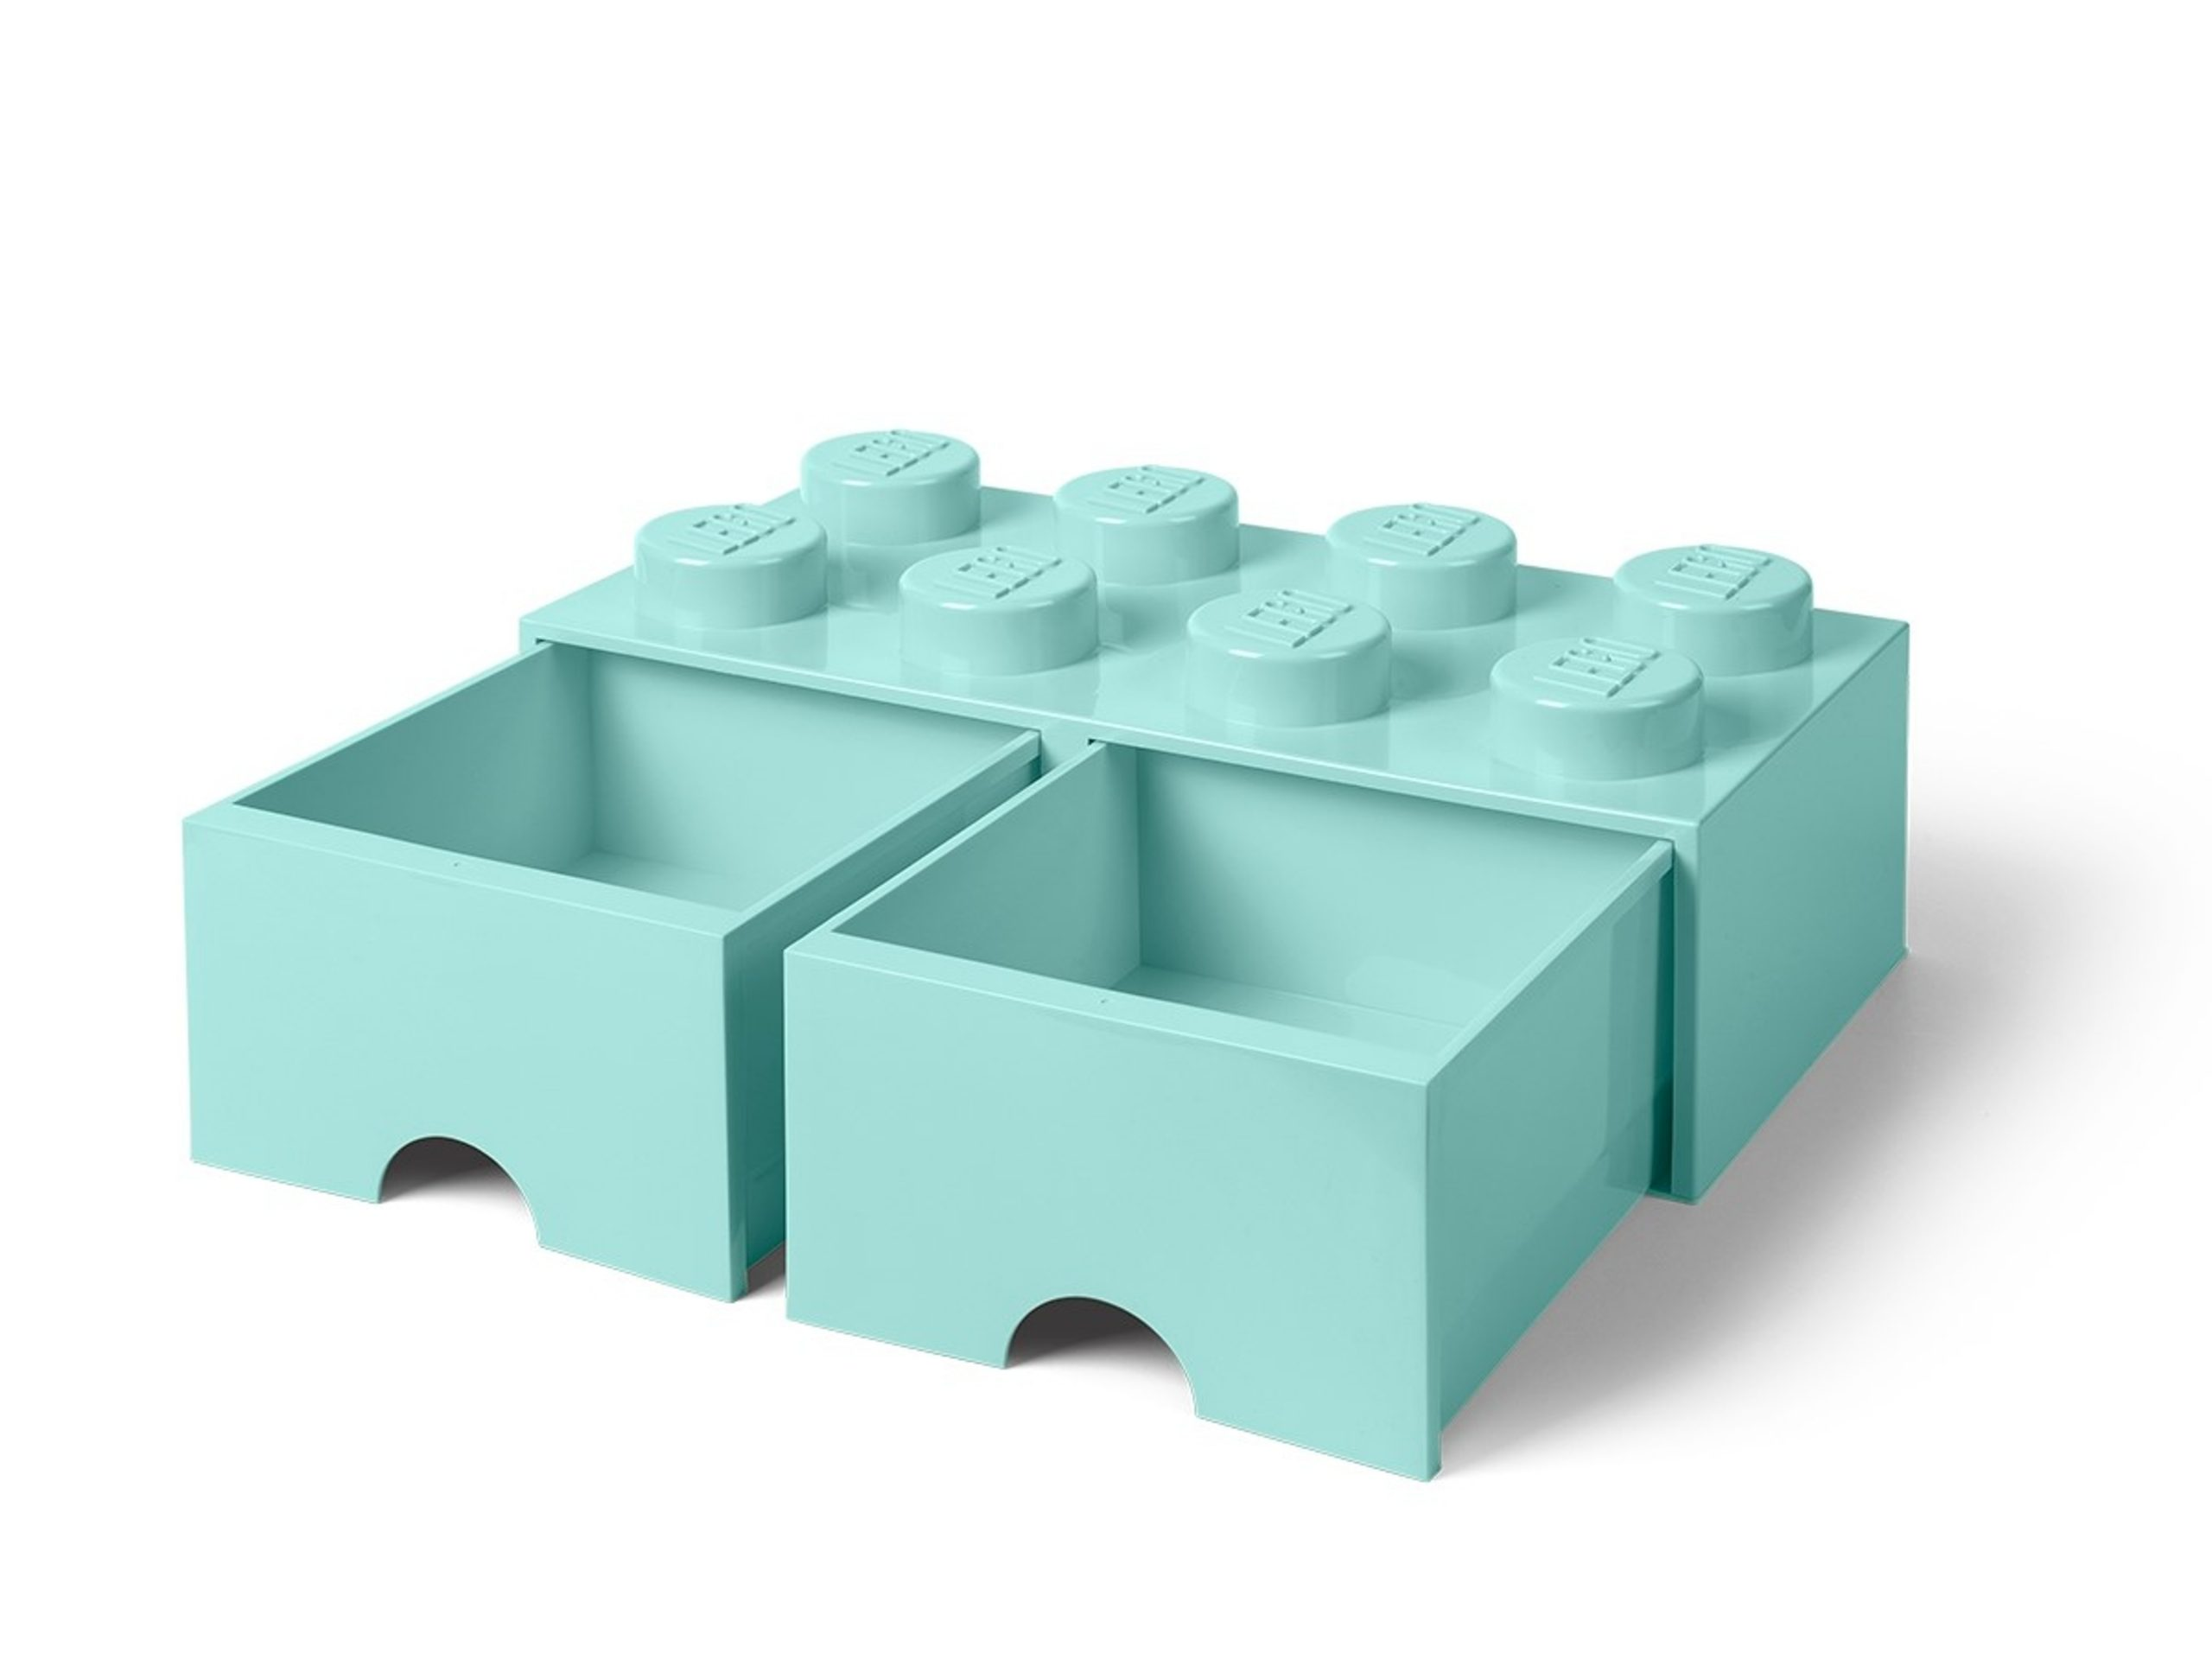 lego 5005721 8 stud aqua light blue storage brick drawer scaled